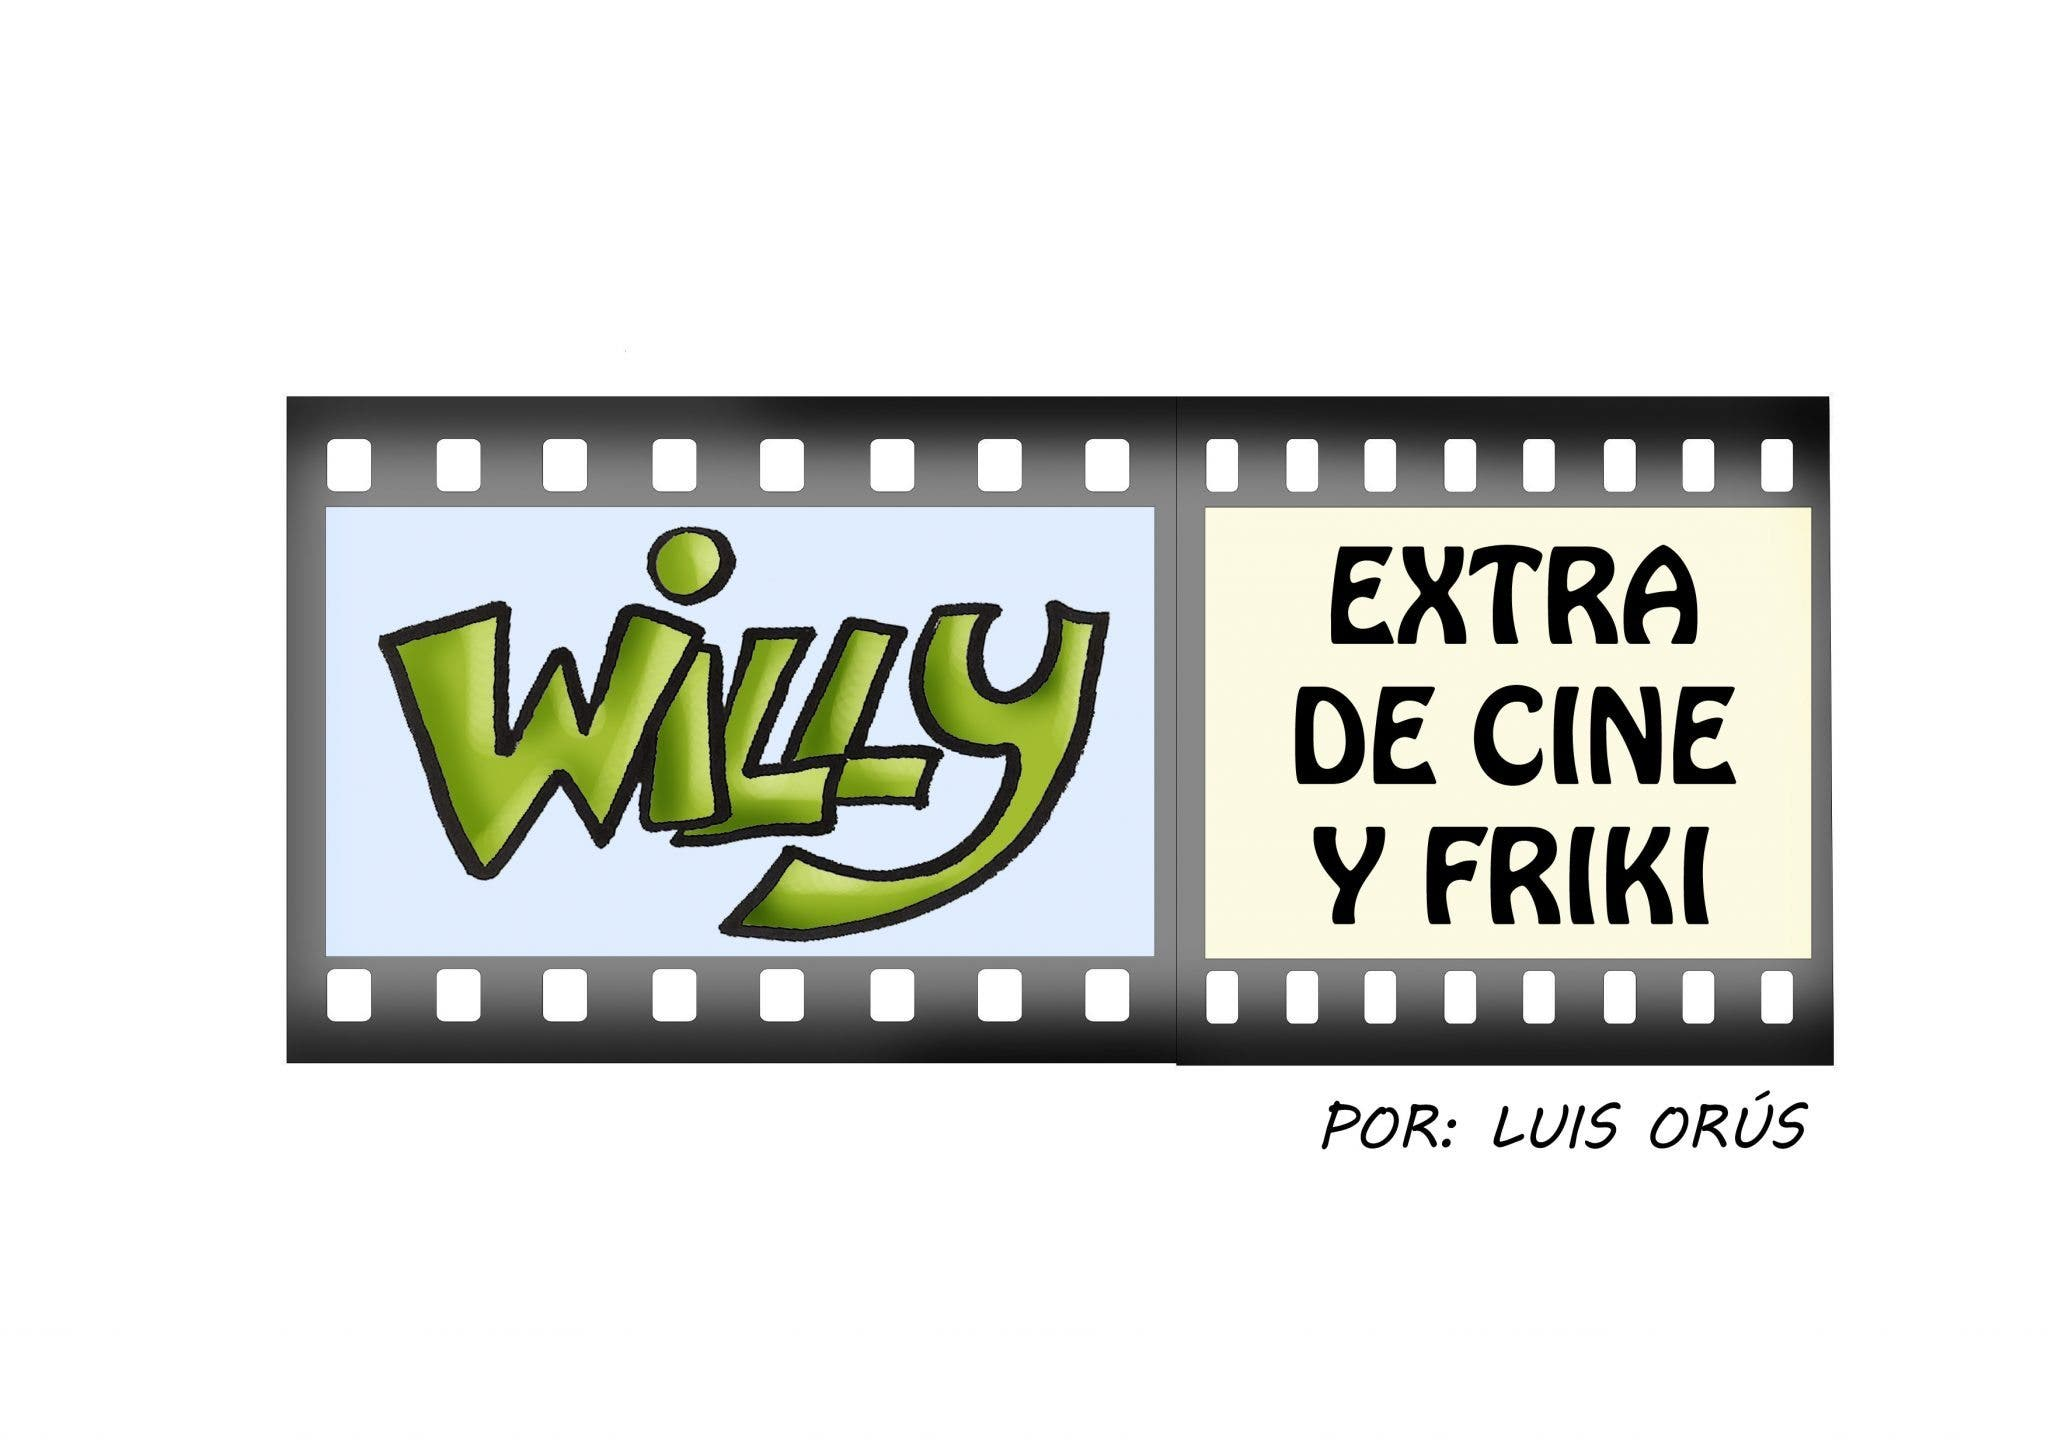 Willy, extra de cine y friki